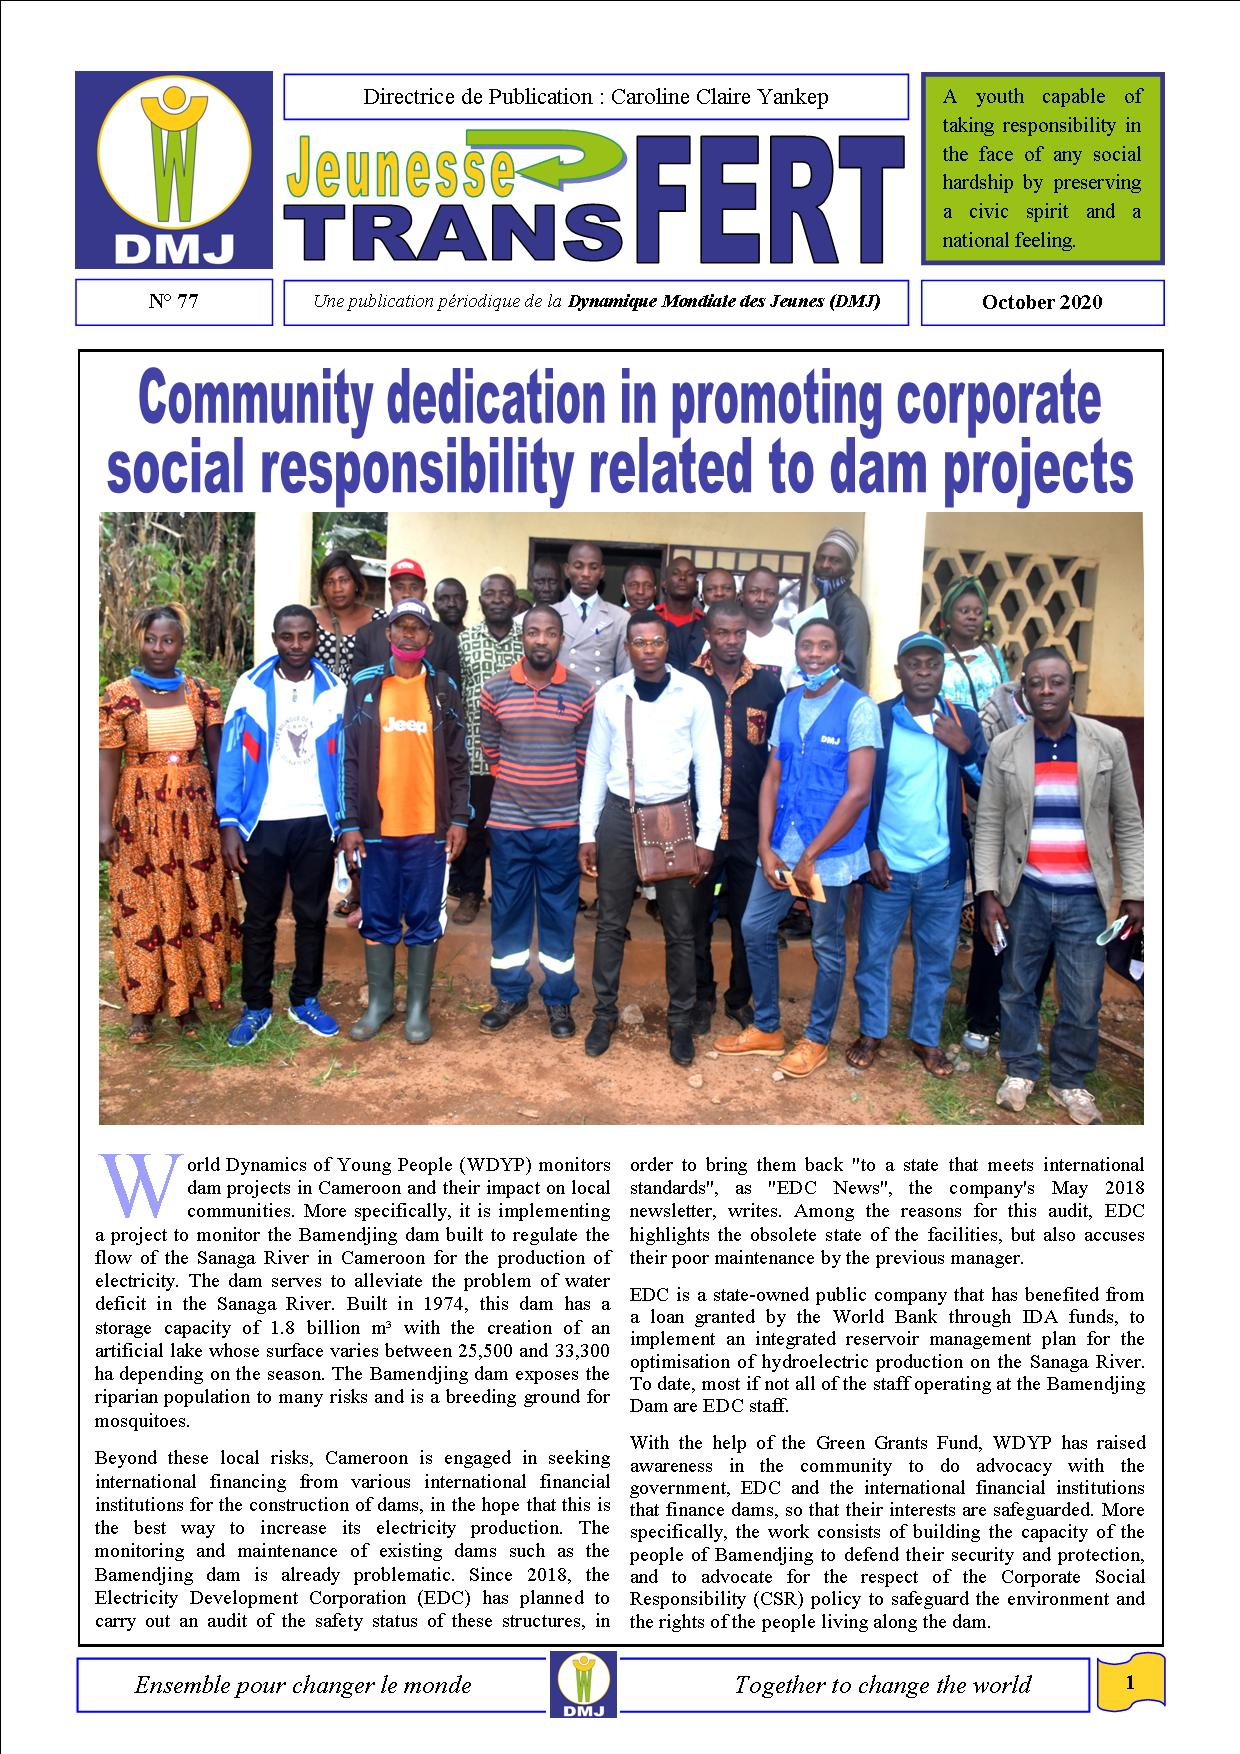 Transfert N°77 _Community dedication in promoting corporate social responsibility related to dam projects _October 2020